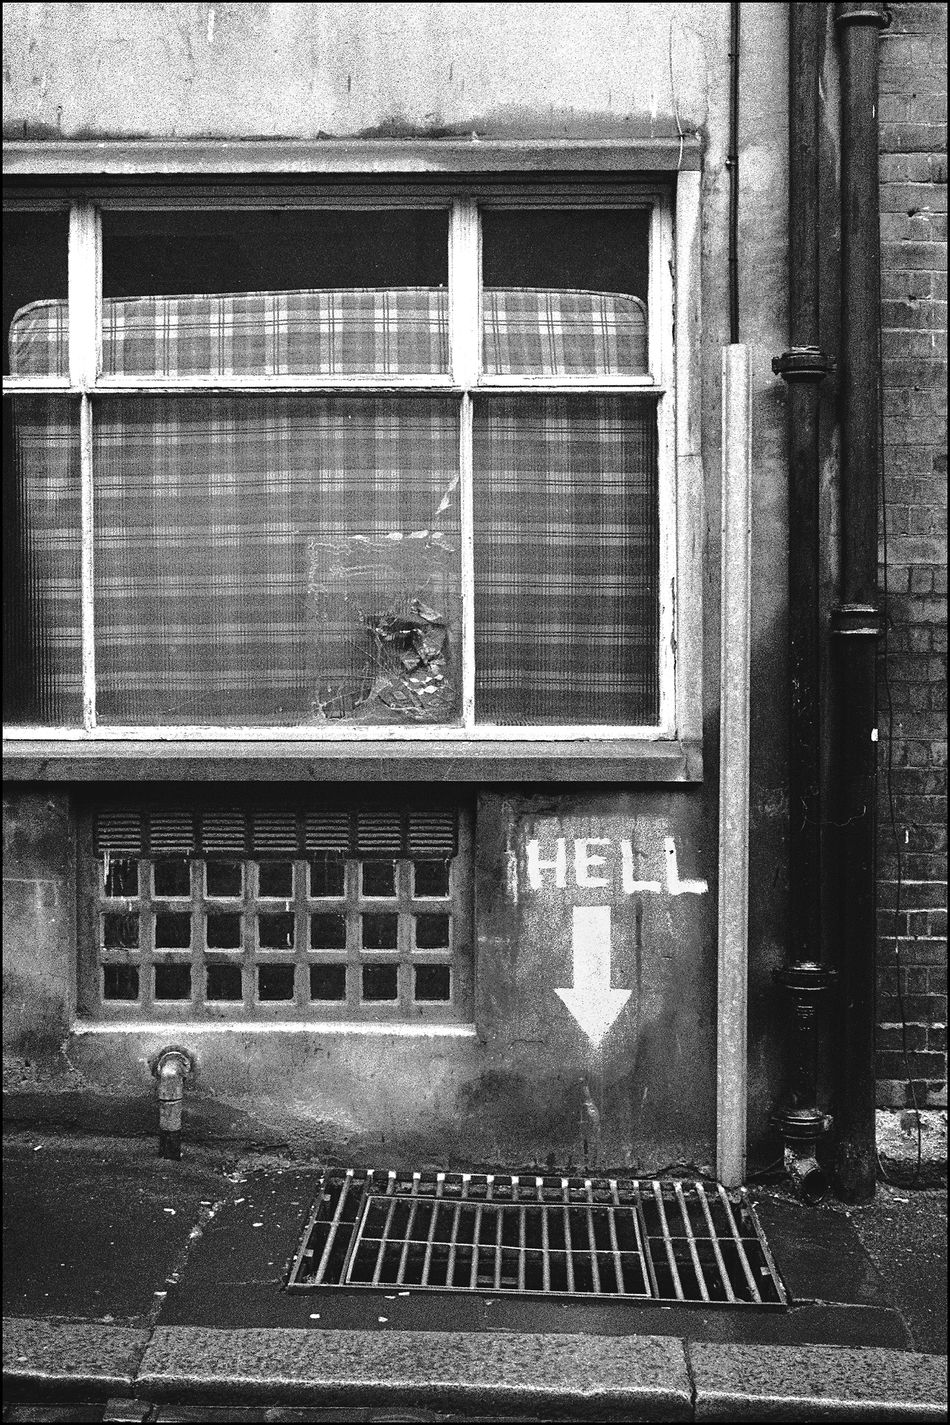 Hell. Architecture Brick Wall Building Building Exterior Built Structure City Close-up Closed Day Exterior Façade Graffiti Art No People Outdoors Paint,